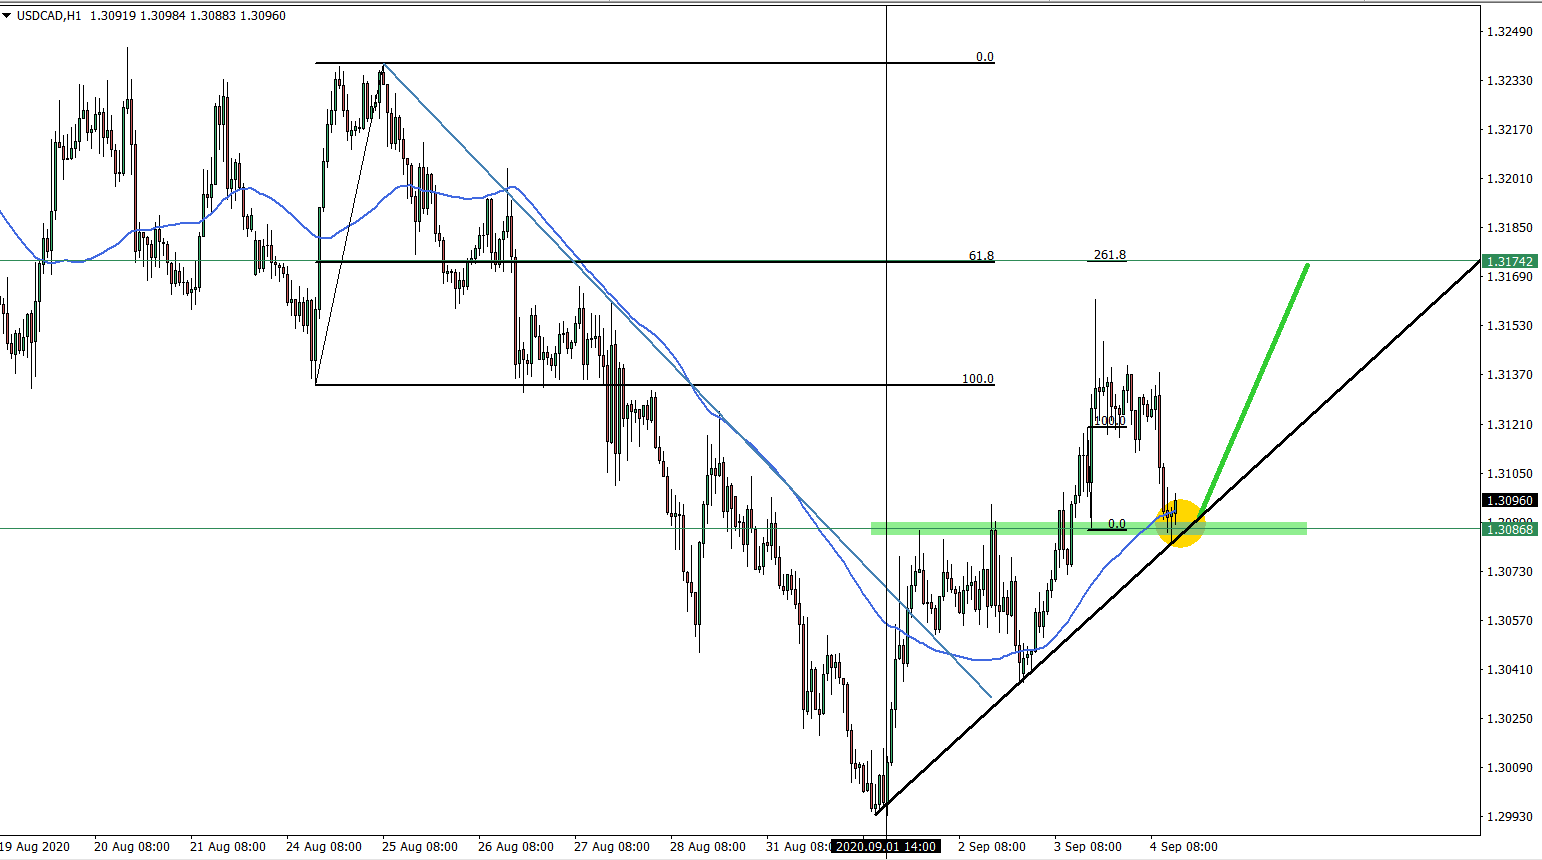 USDCAD hourly chart september 9th 2020